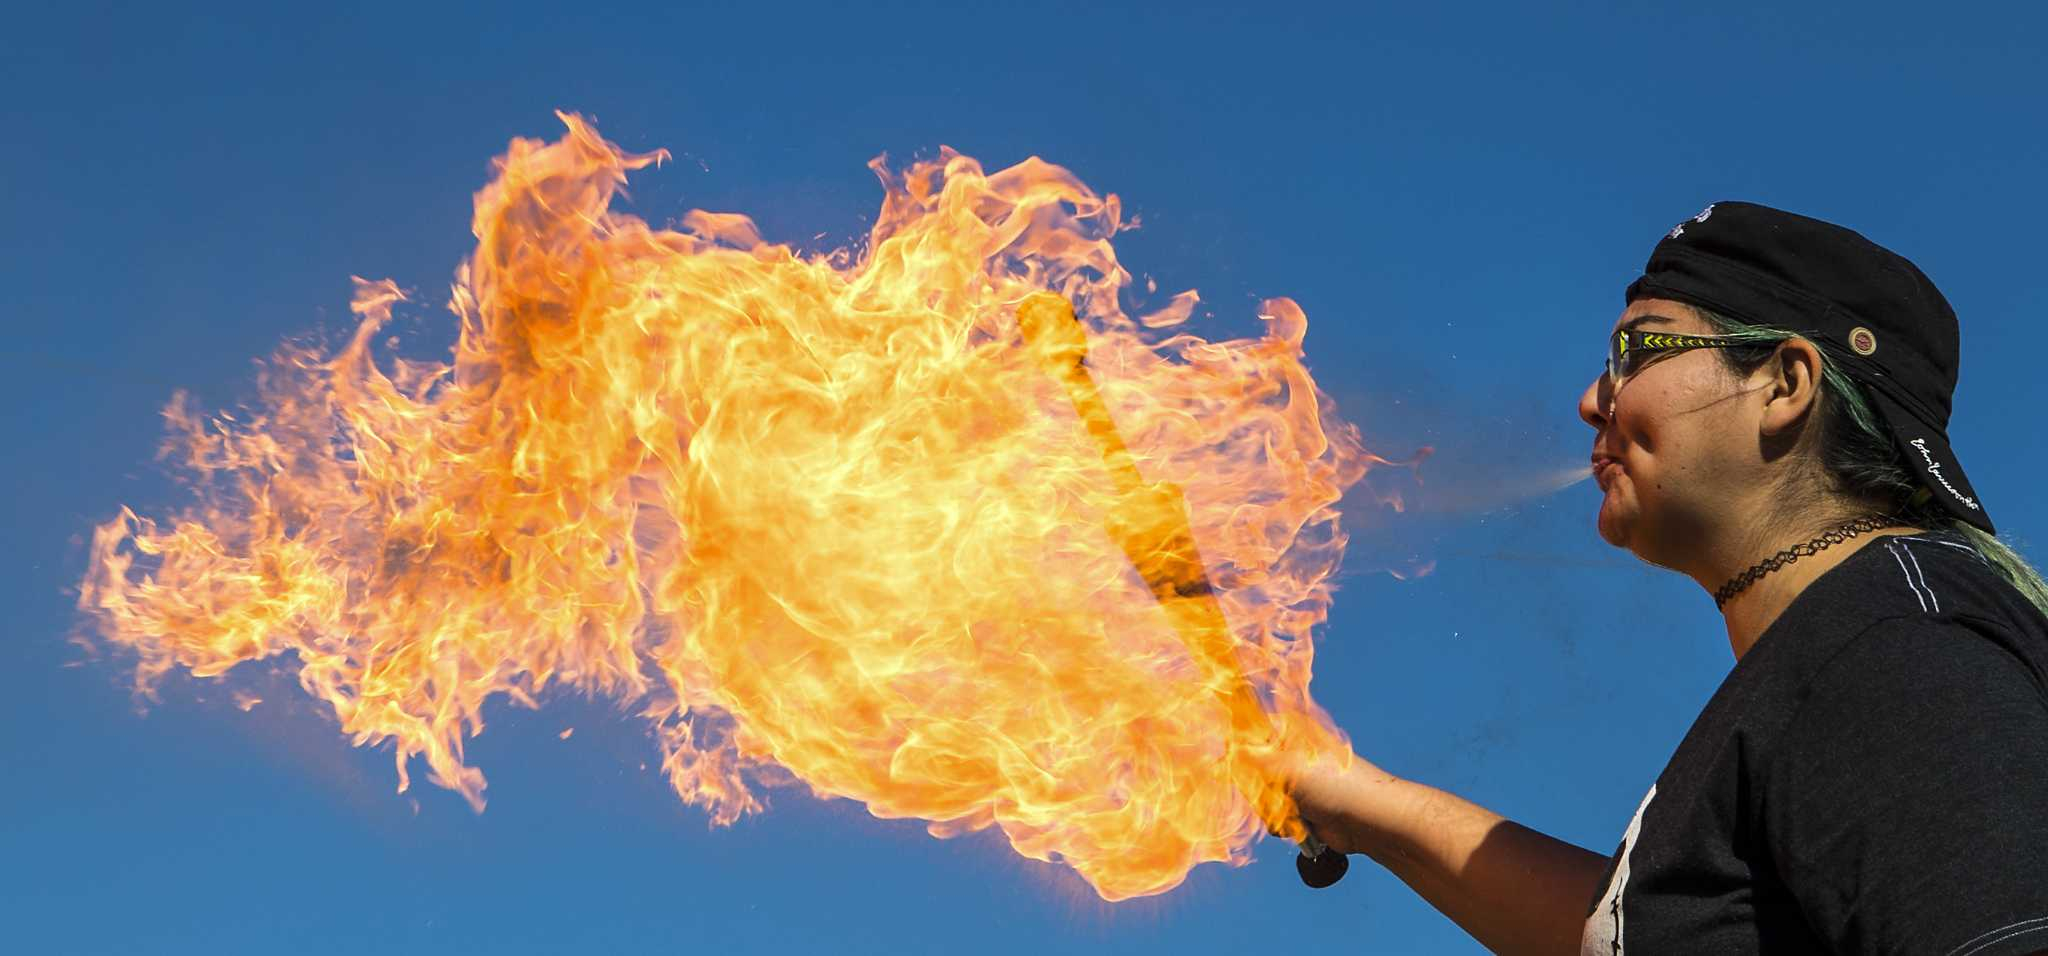 Fire Breathing Classes Come To Houston And They'Re Totally Lit With Regard To Houston Fire Schedule